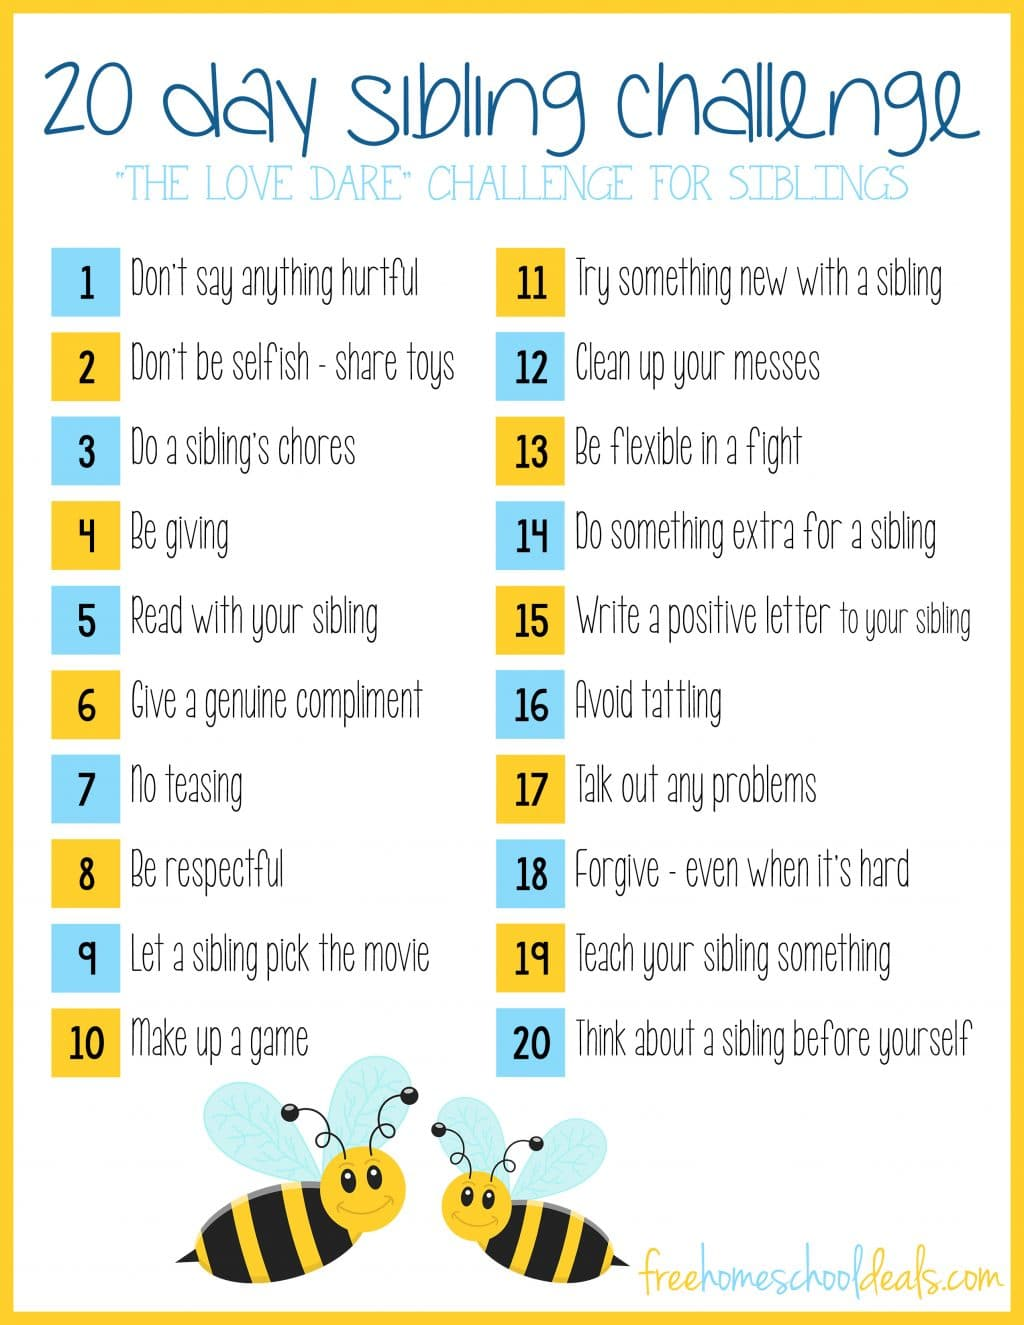 20 Day Sibling Challenge